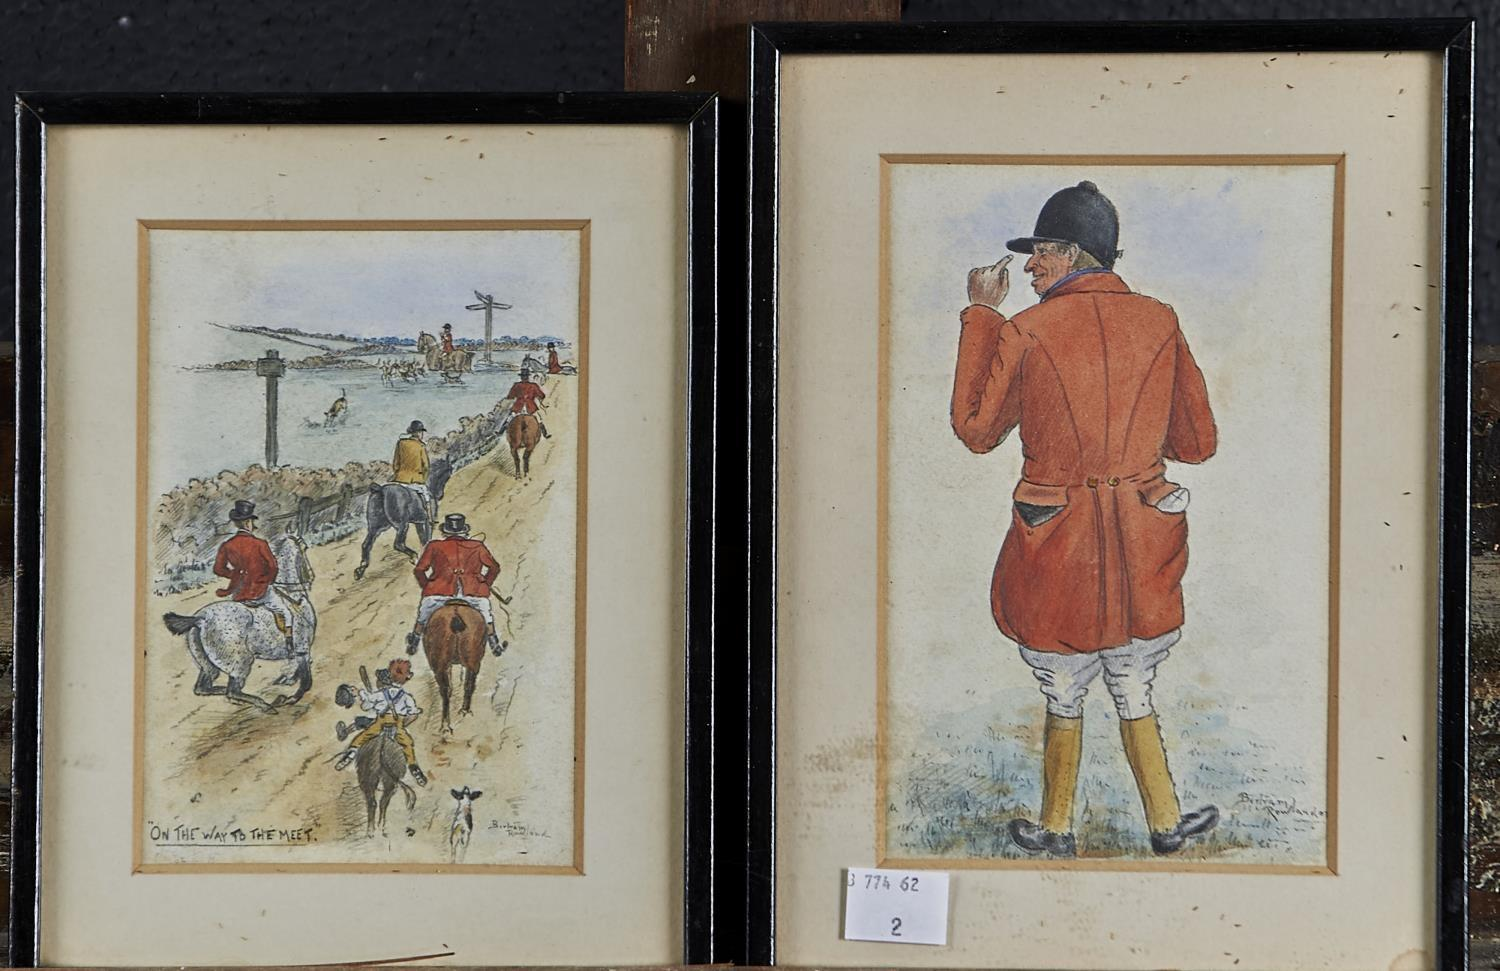 BERTRAM ROWLAND, 19TH / 20TH C - FOX HUNTER FROM BEHIND; ON THE WAY TO THE MEET, TWO, BOTH SIGNED